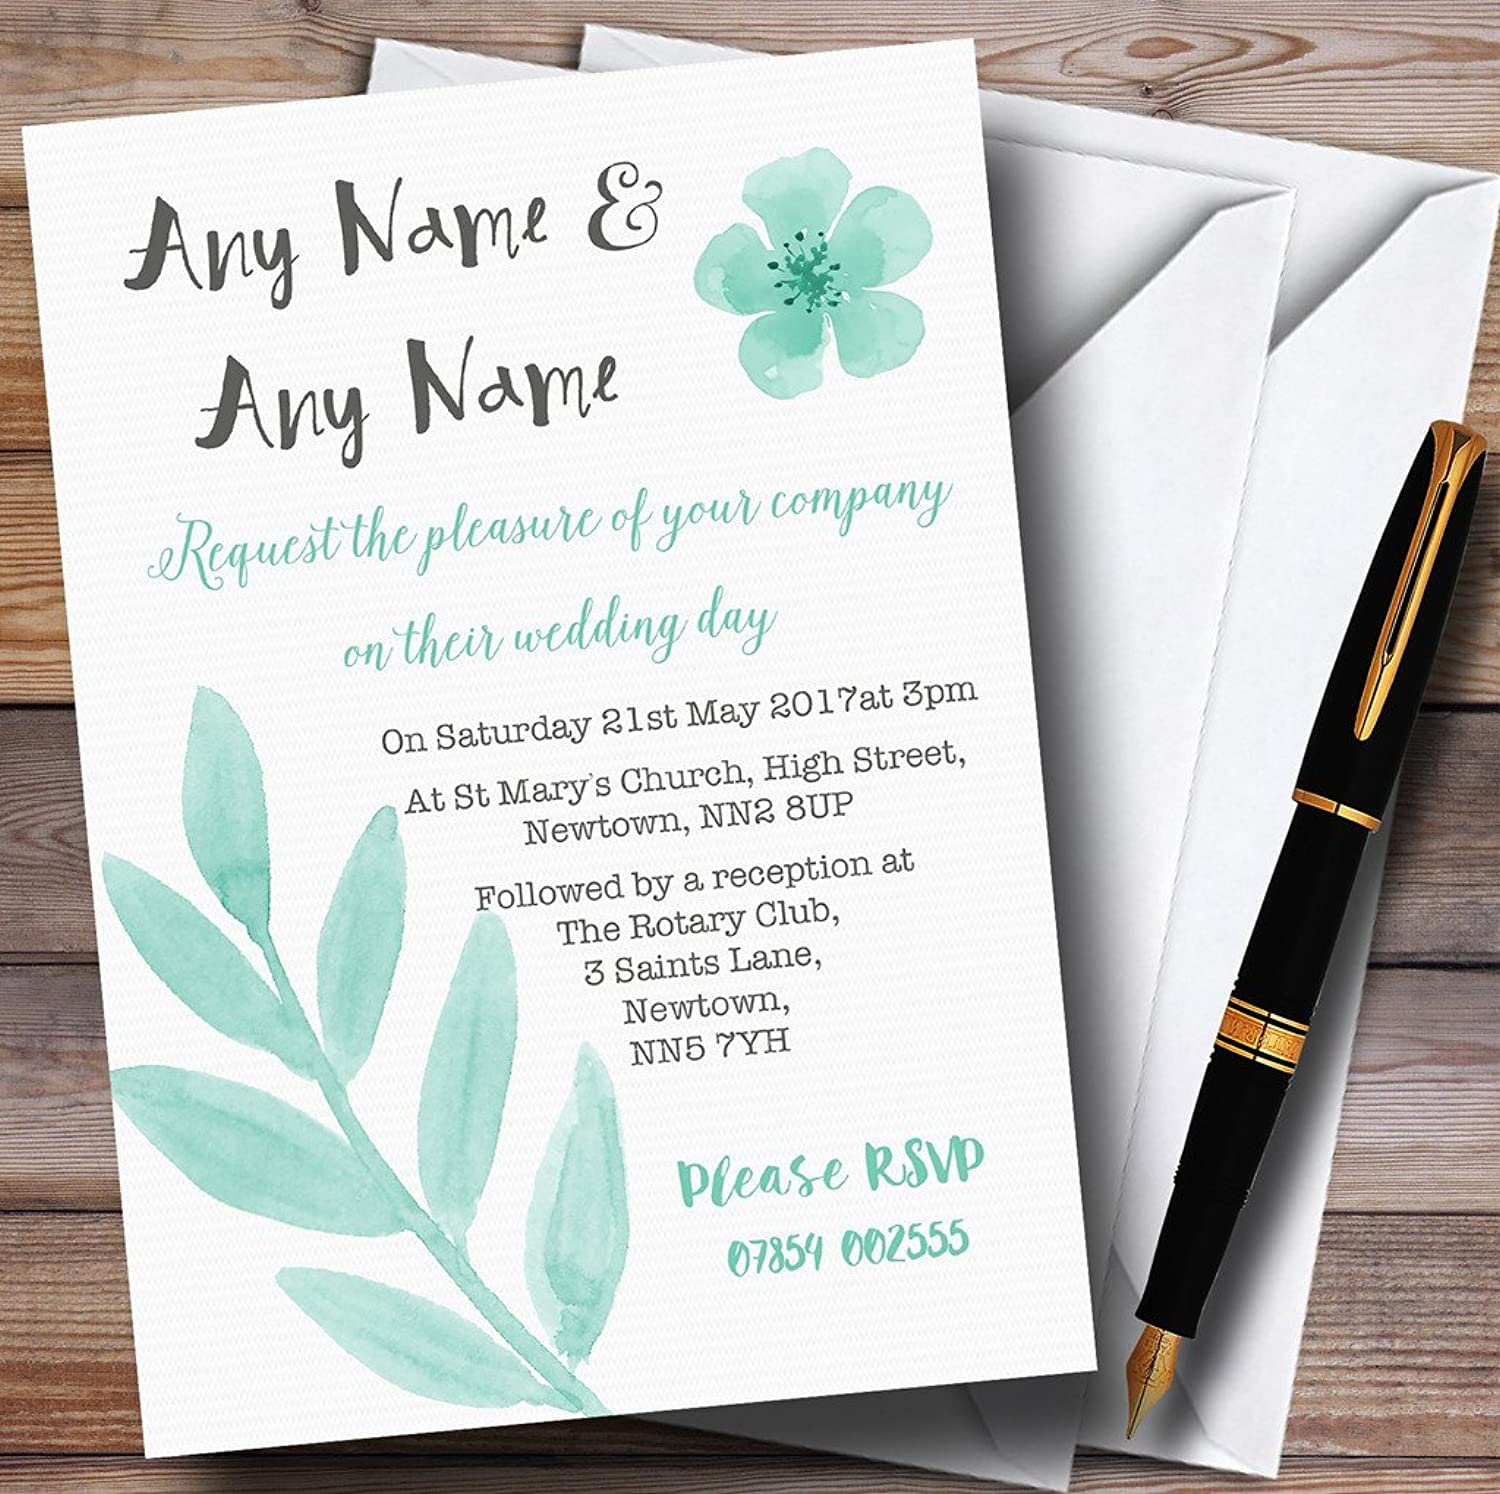 Watercolour Subtle Teal Mint Green Personalised Evening Reception Invitations   Invites & Envelopes